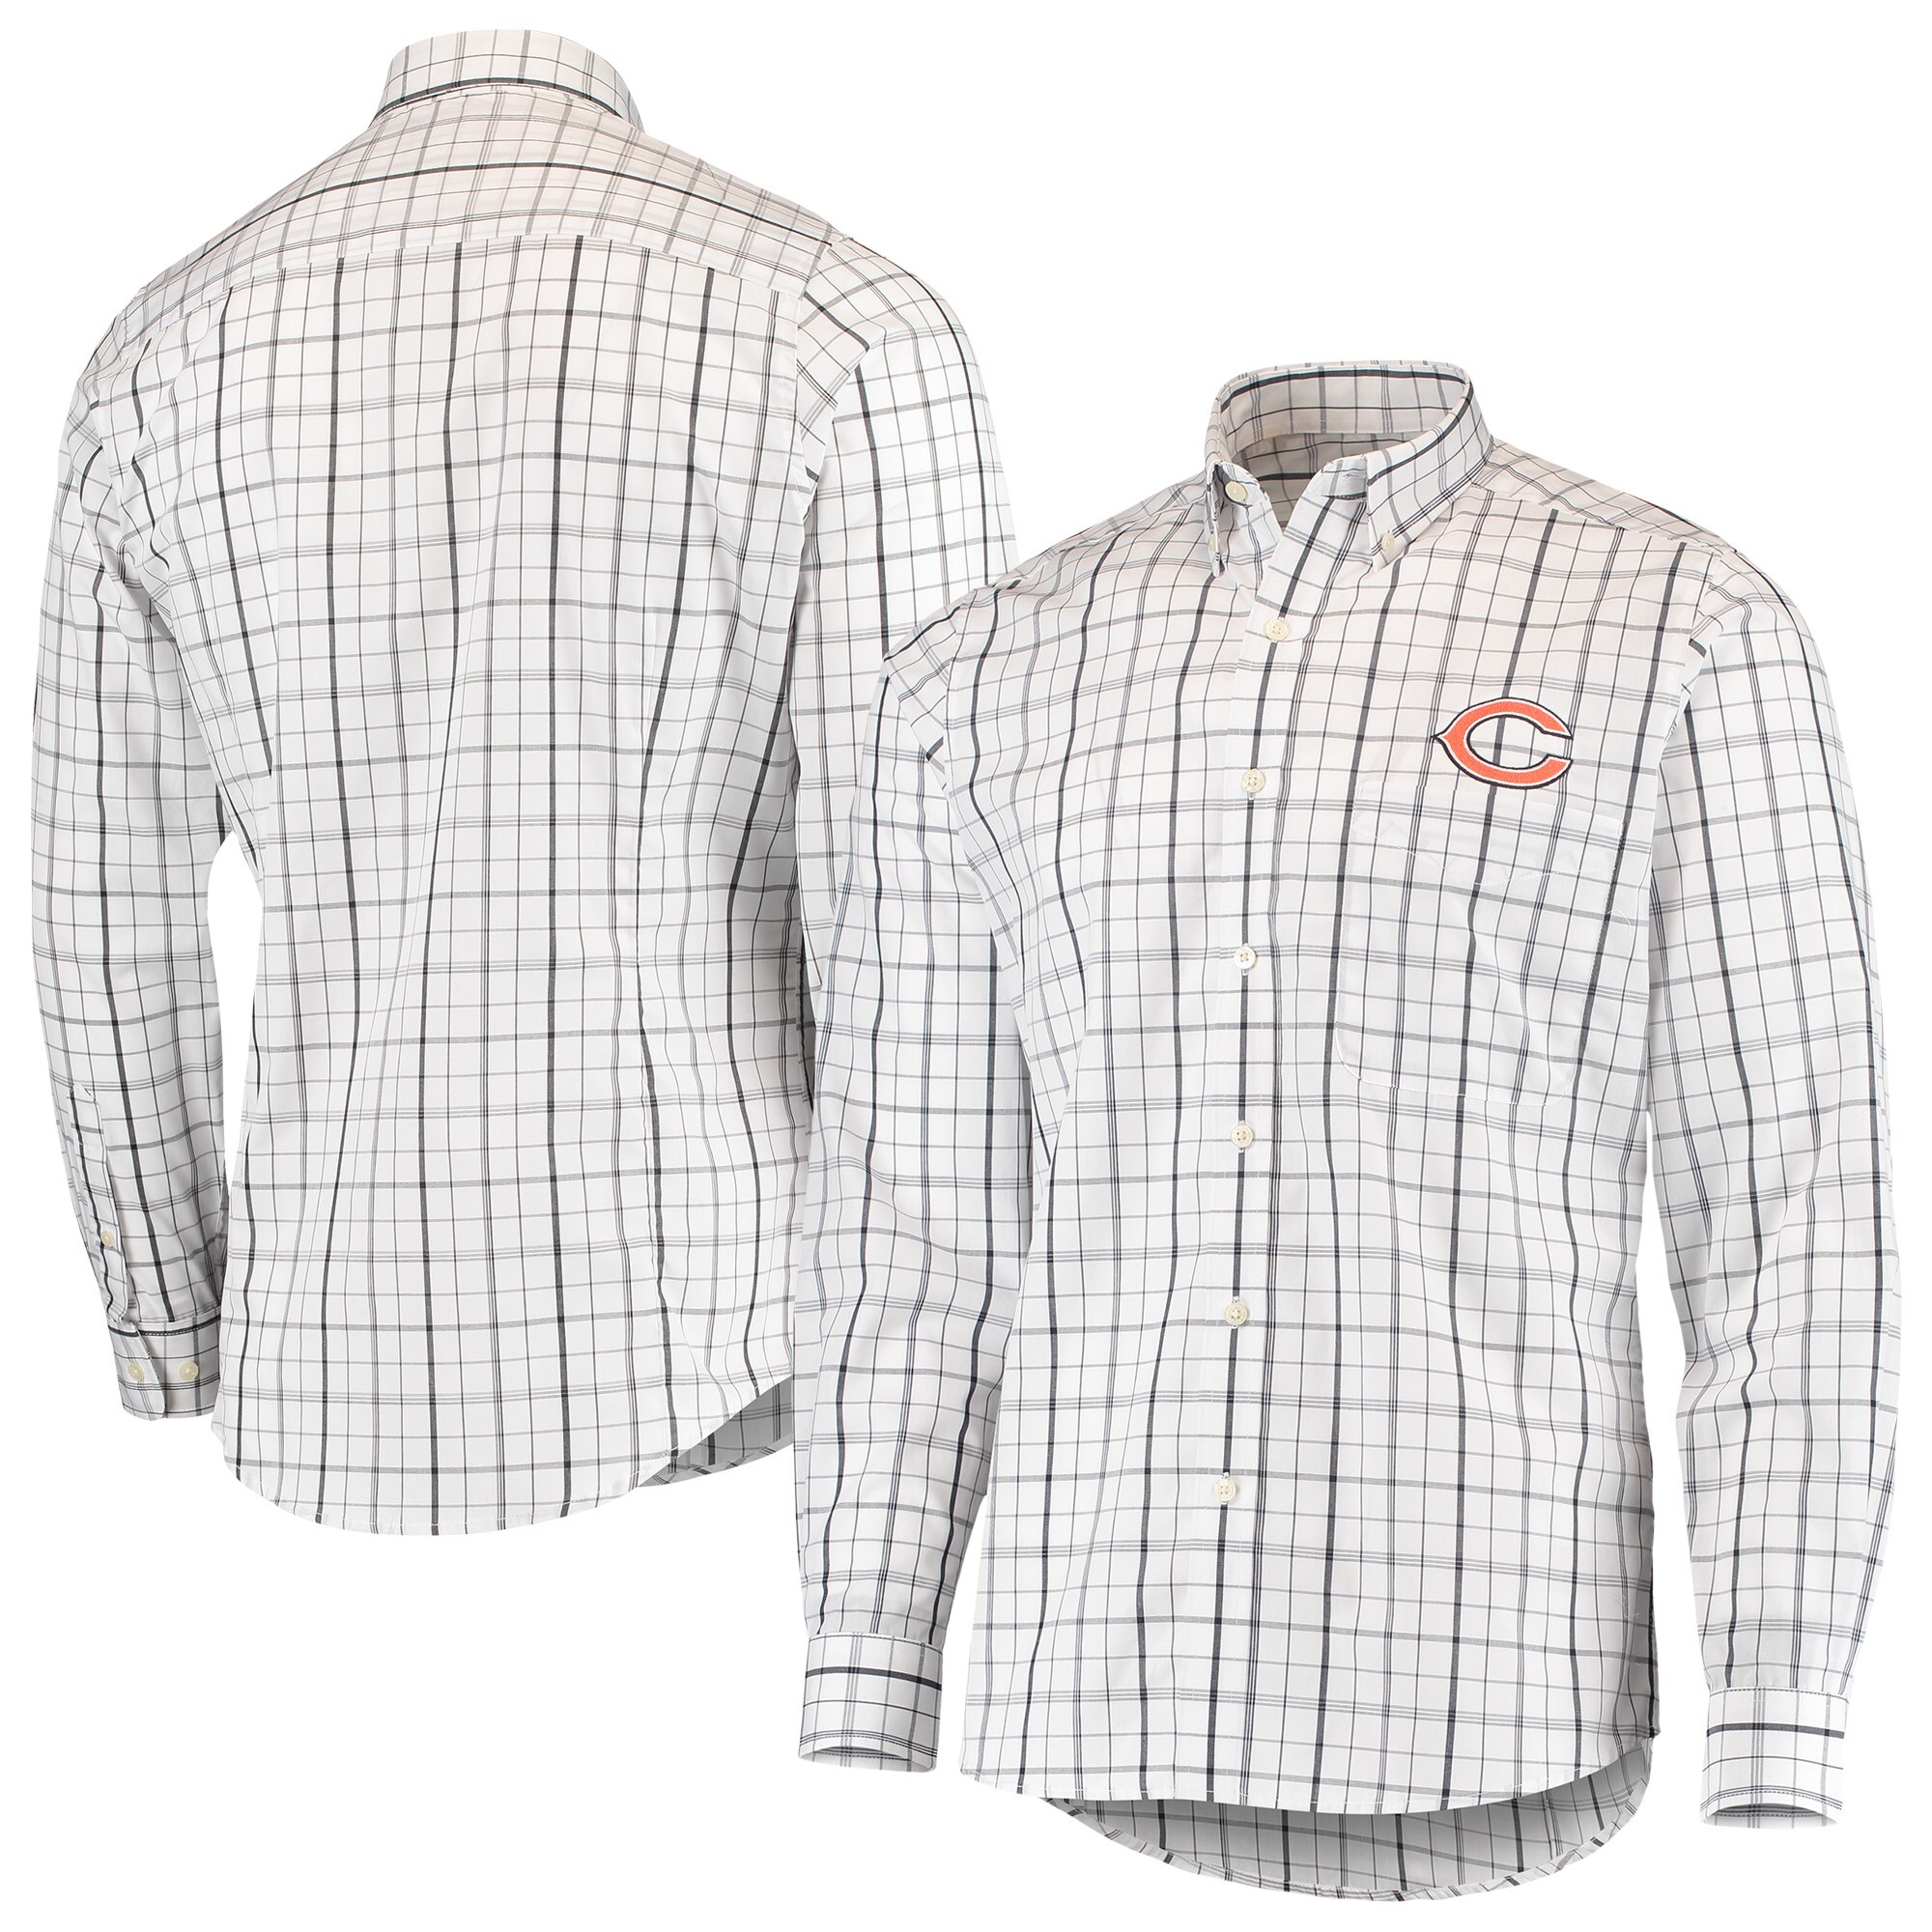 Chicago Bears Antigua Keen Long Sleeve Button-Down Shirt - White/Navy